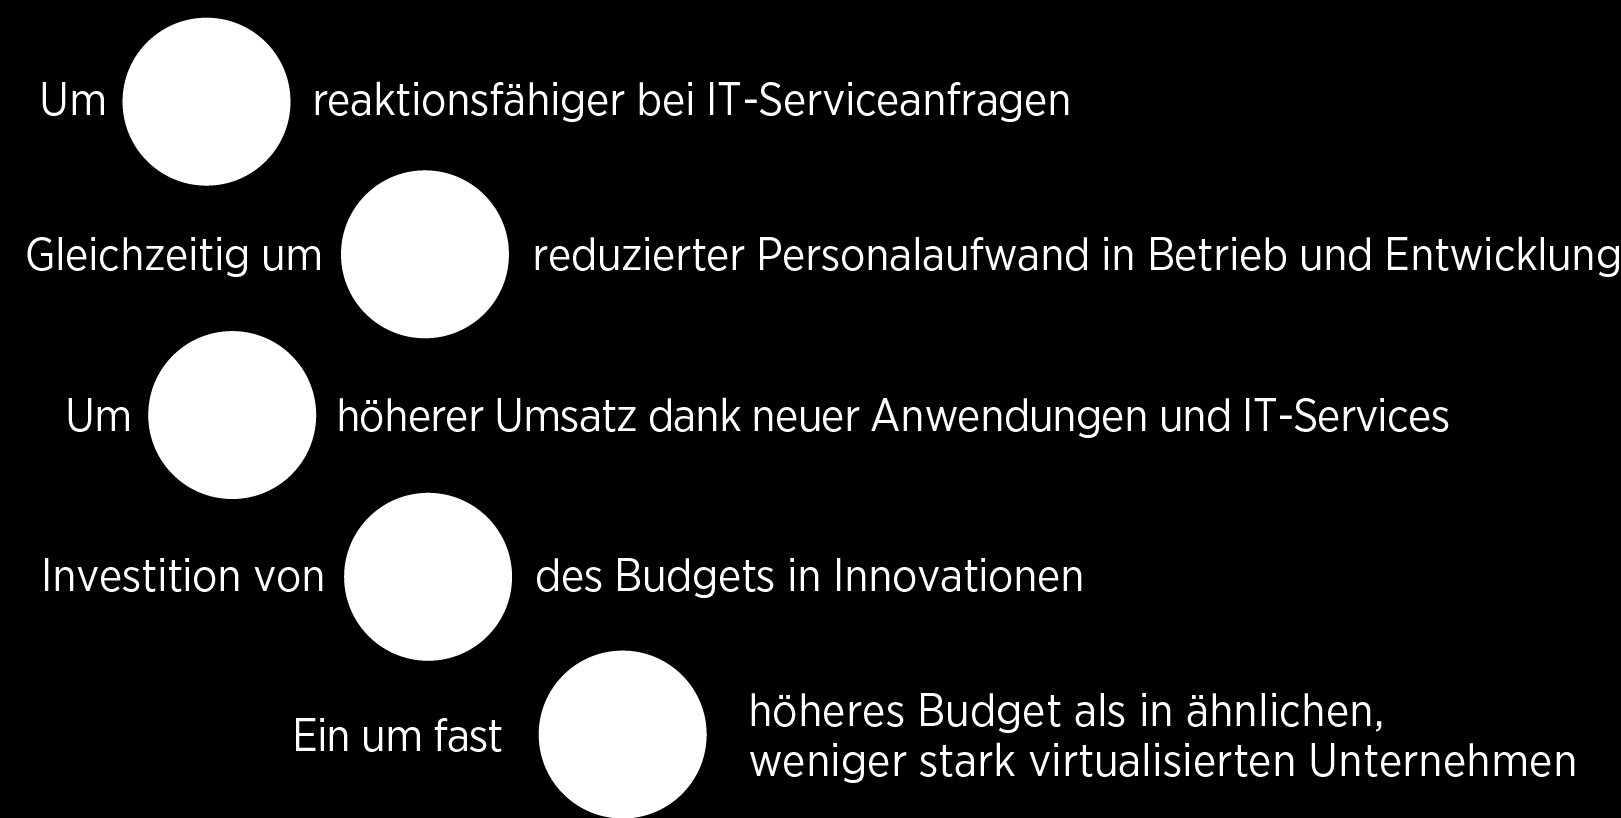 Der Weg zu IT as a Service Phase I Einsparungen bei Investitionskosten/ Konsolidierung IT-Produktion Phase II Betriebskosteneinsparungen Servicequalität Verbesserungen Zuverlässigkeit